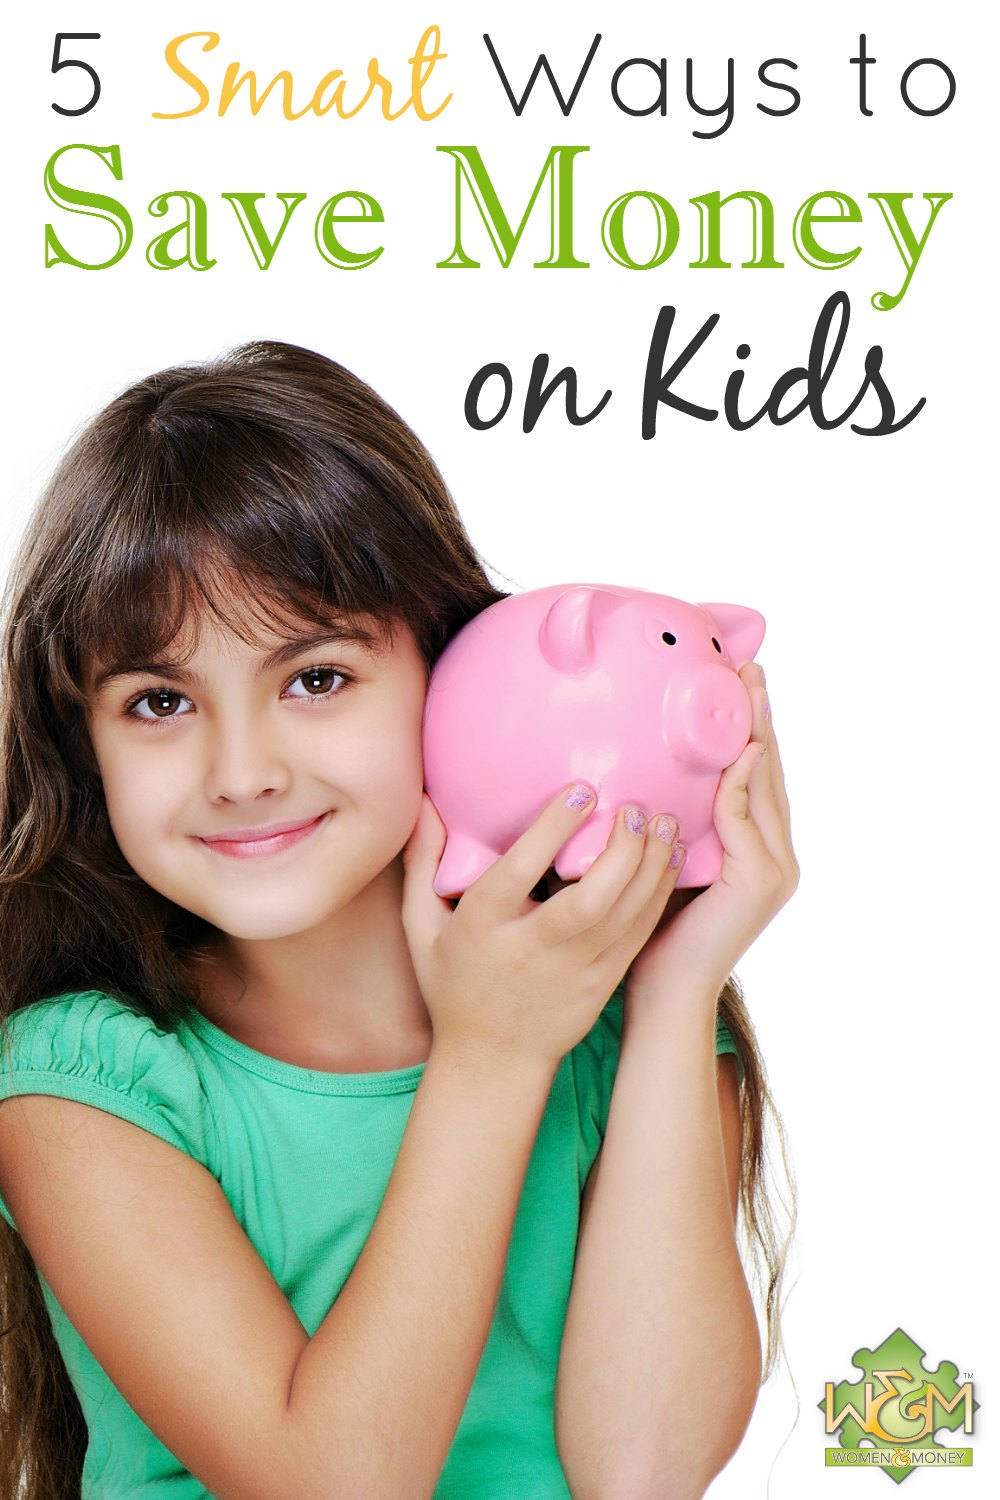 5 smart ways to save money on kids